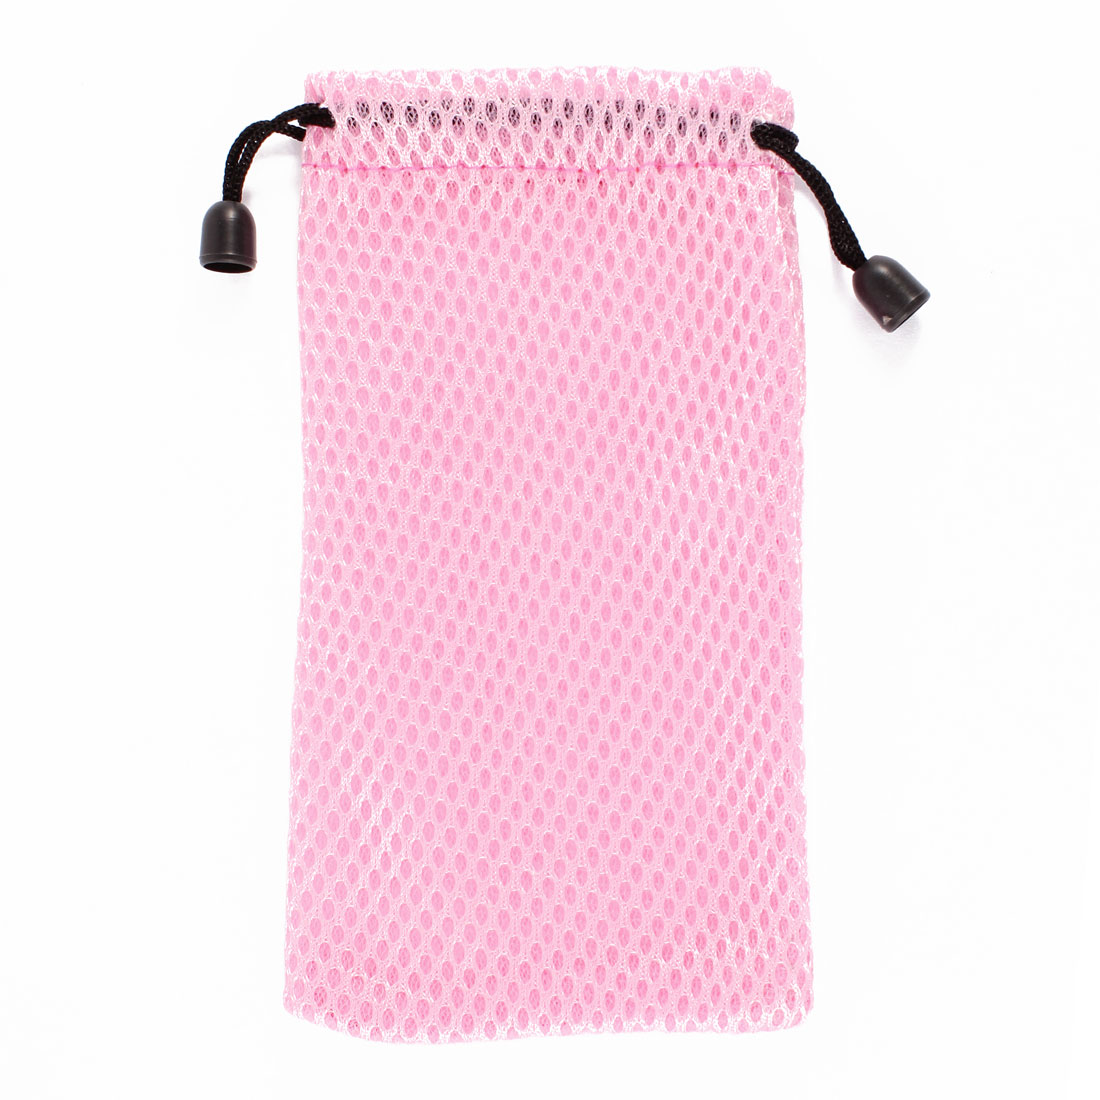 Drawstring Closure Nylon Mesh Glasses Eyeglasses Phone Pouch Case Pink